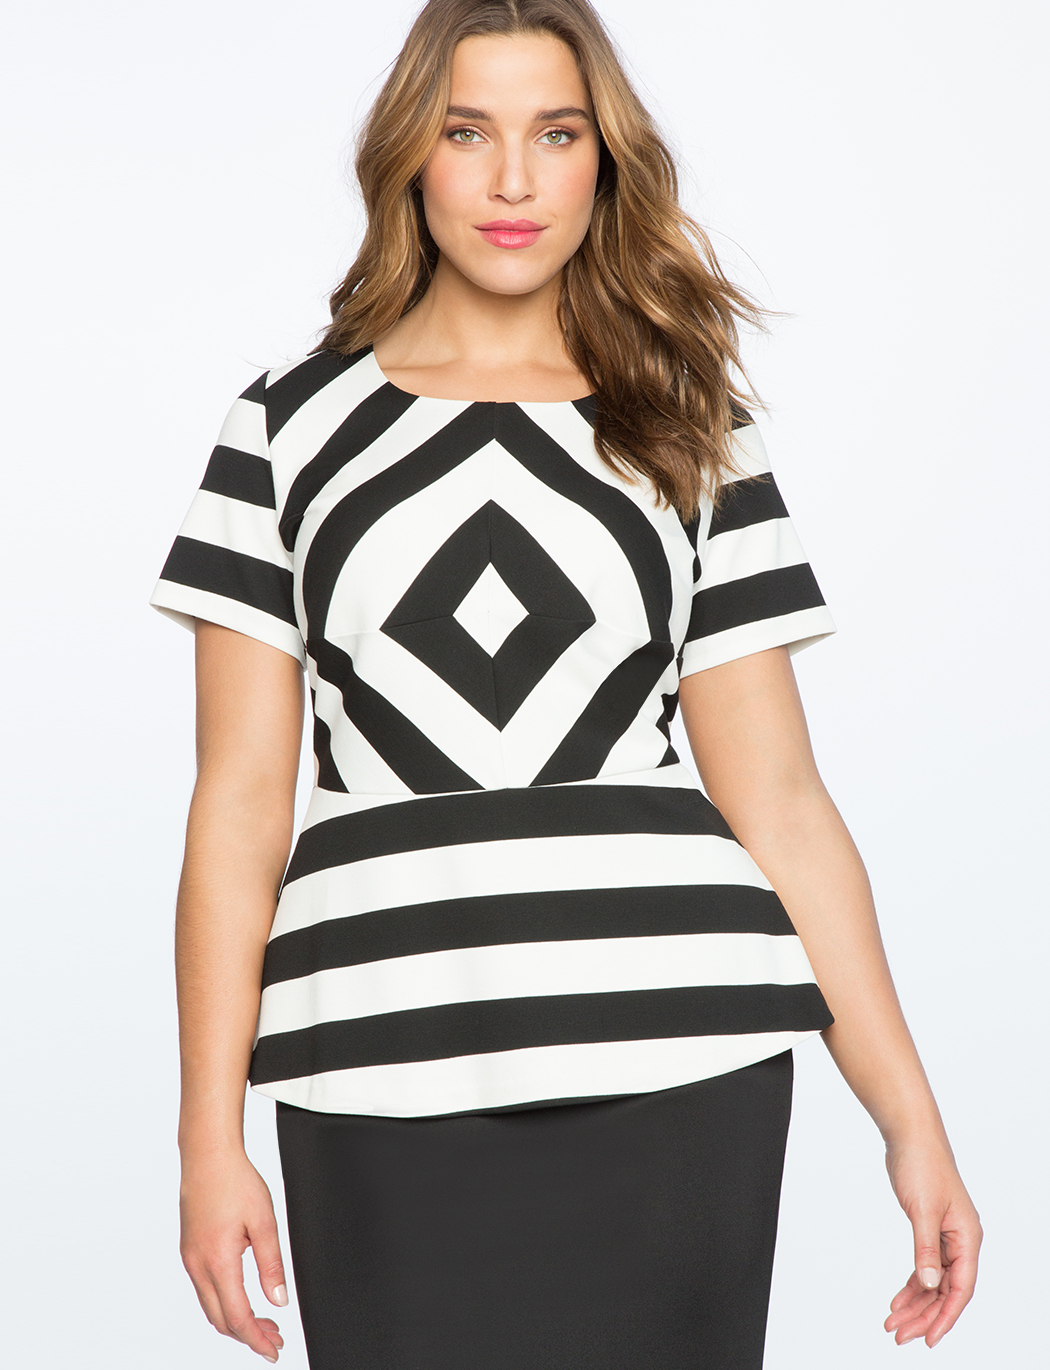 a6508de13a1ea8 Illusion Stripe Peplum Top | Women's Plus Size Tops | ELOQUII